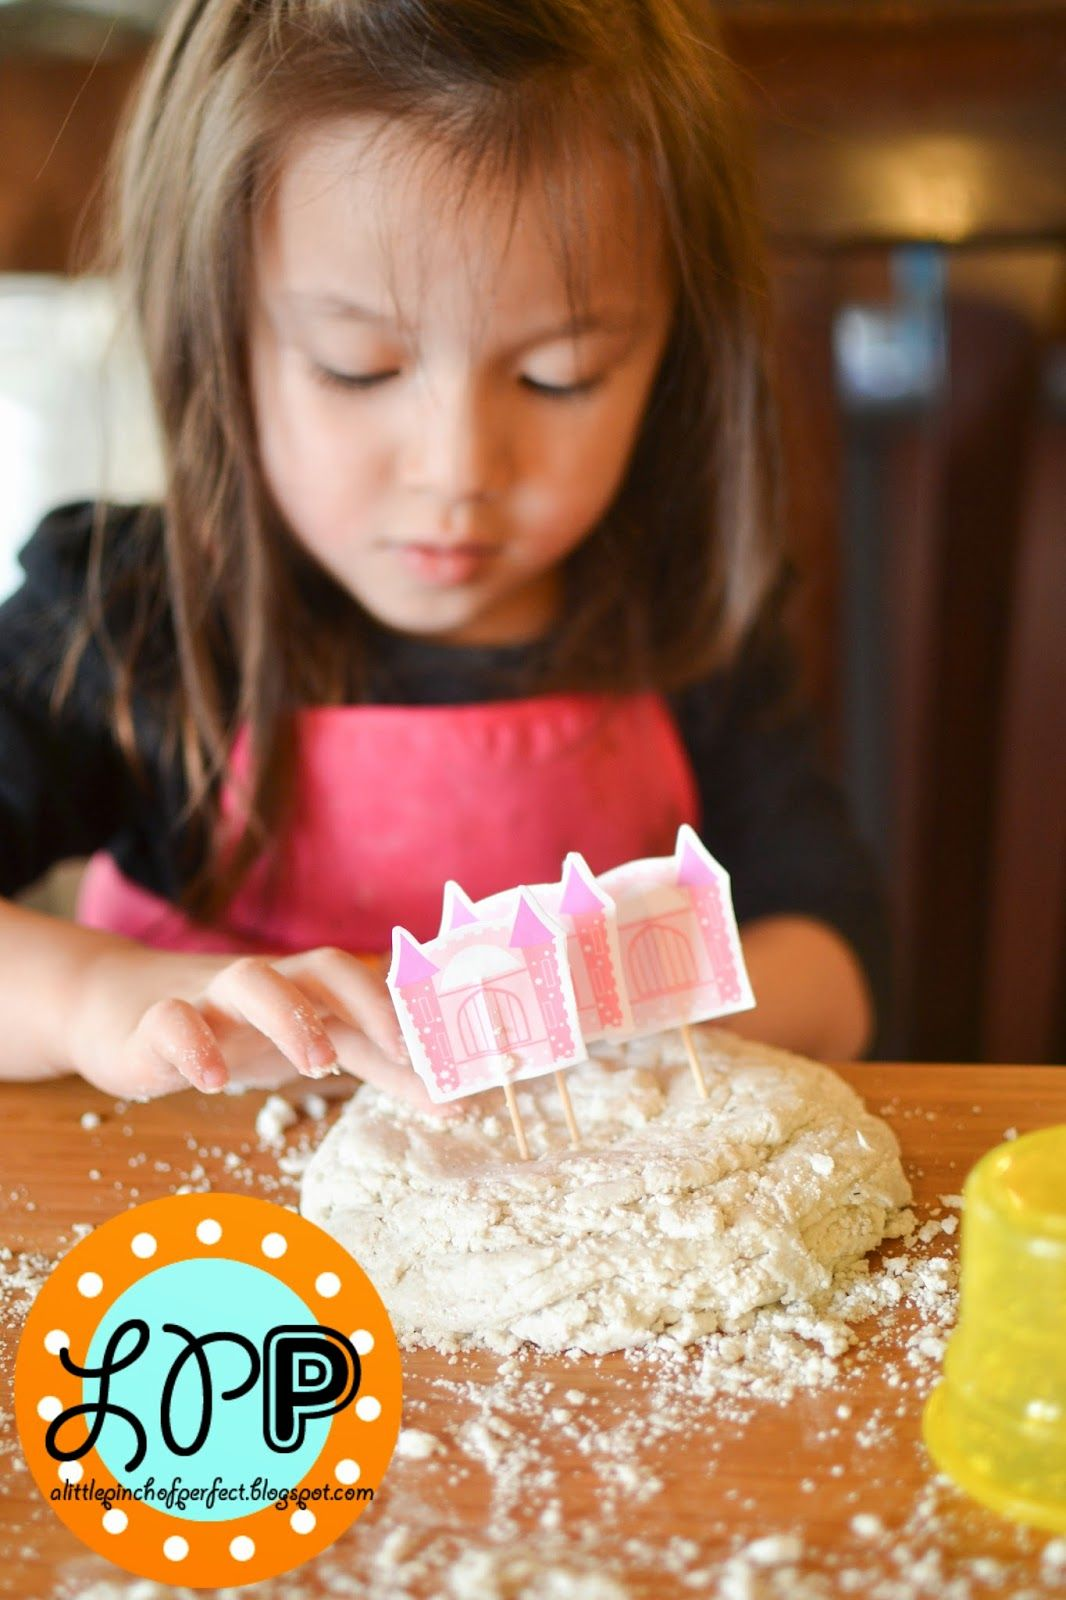 Make sand play dough - bring sandcastles inside!